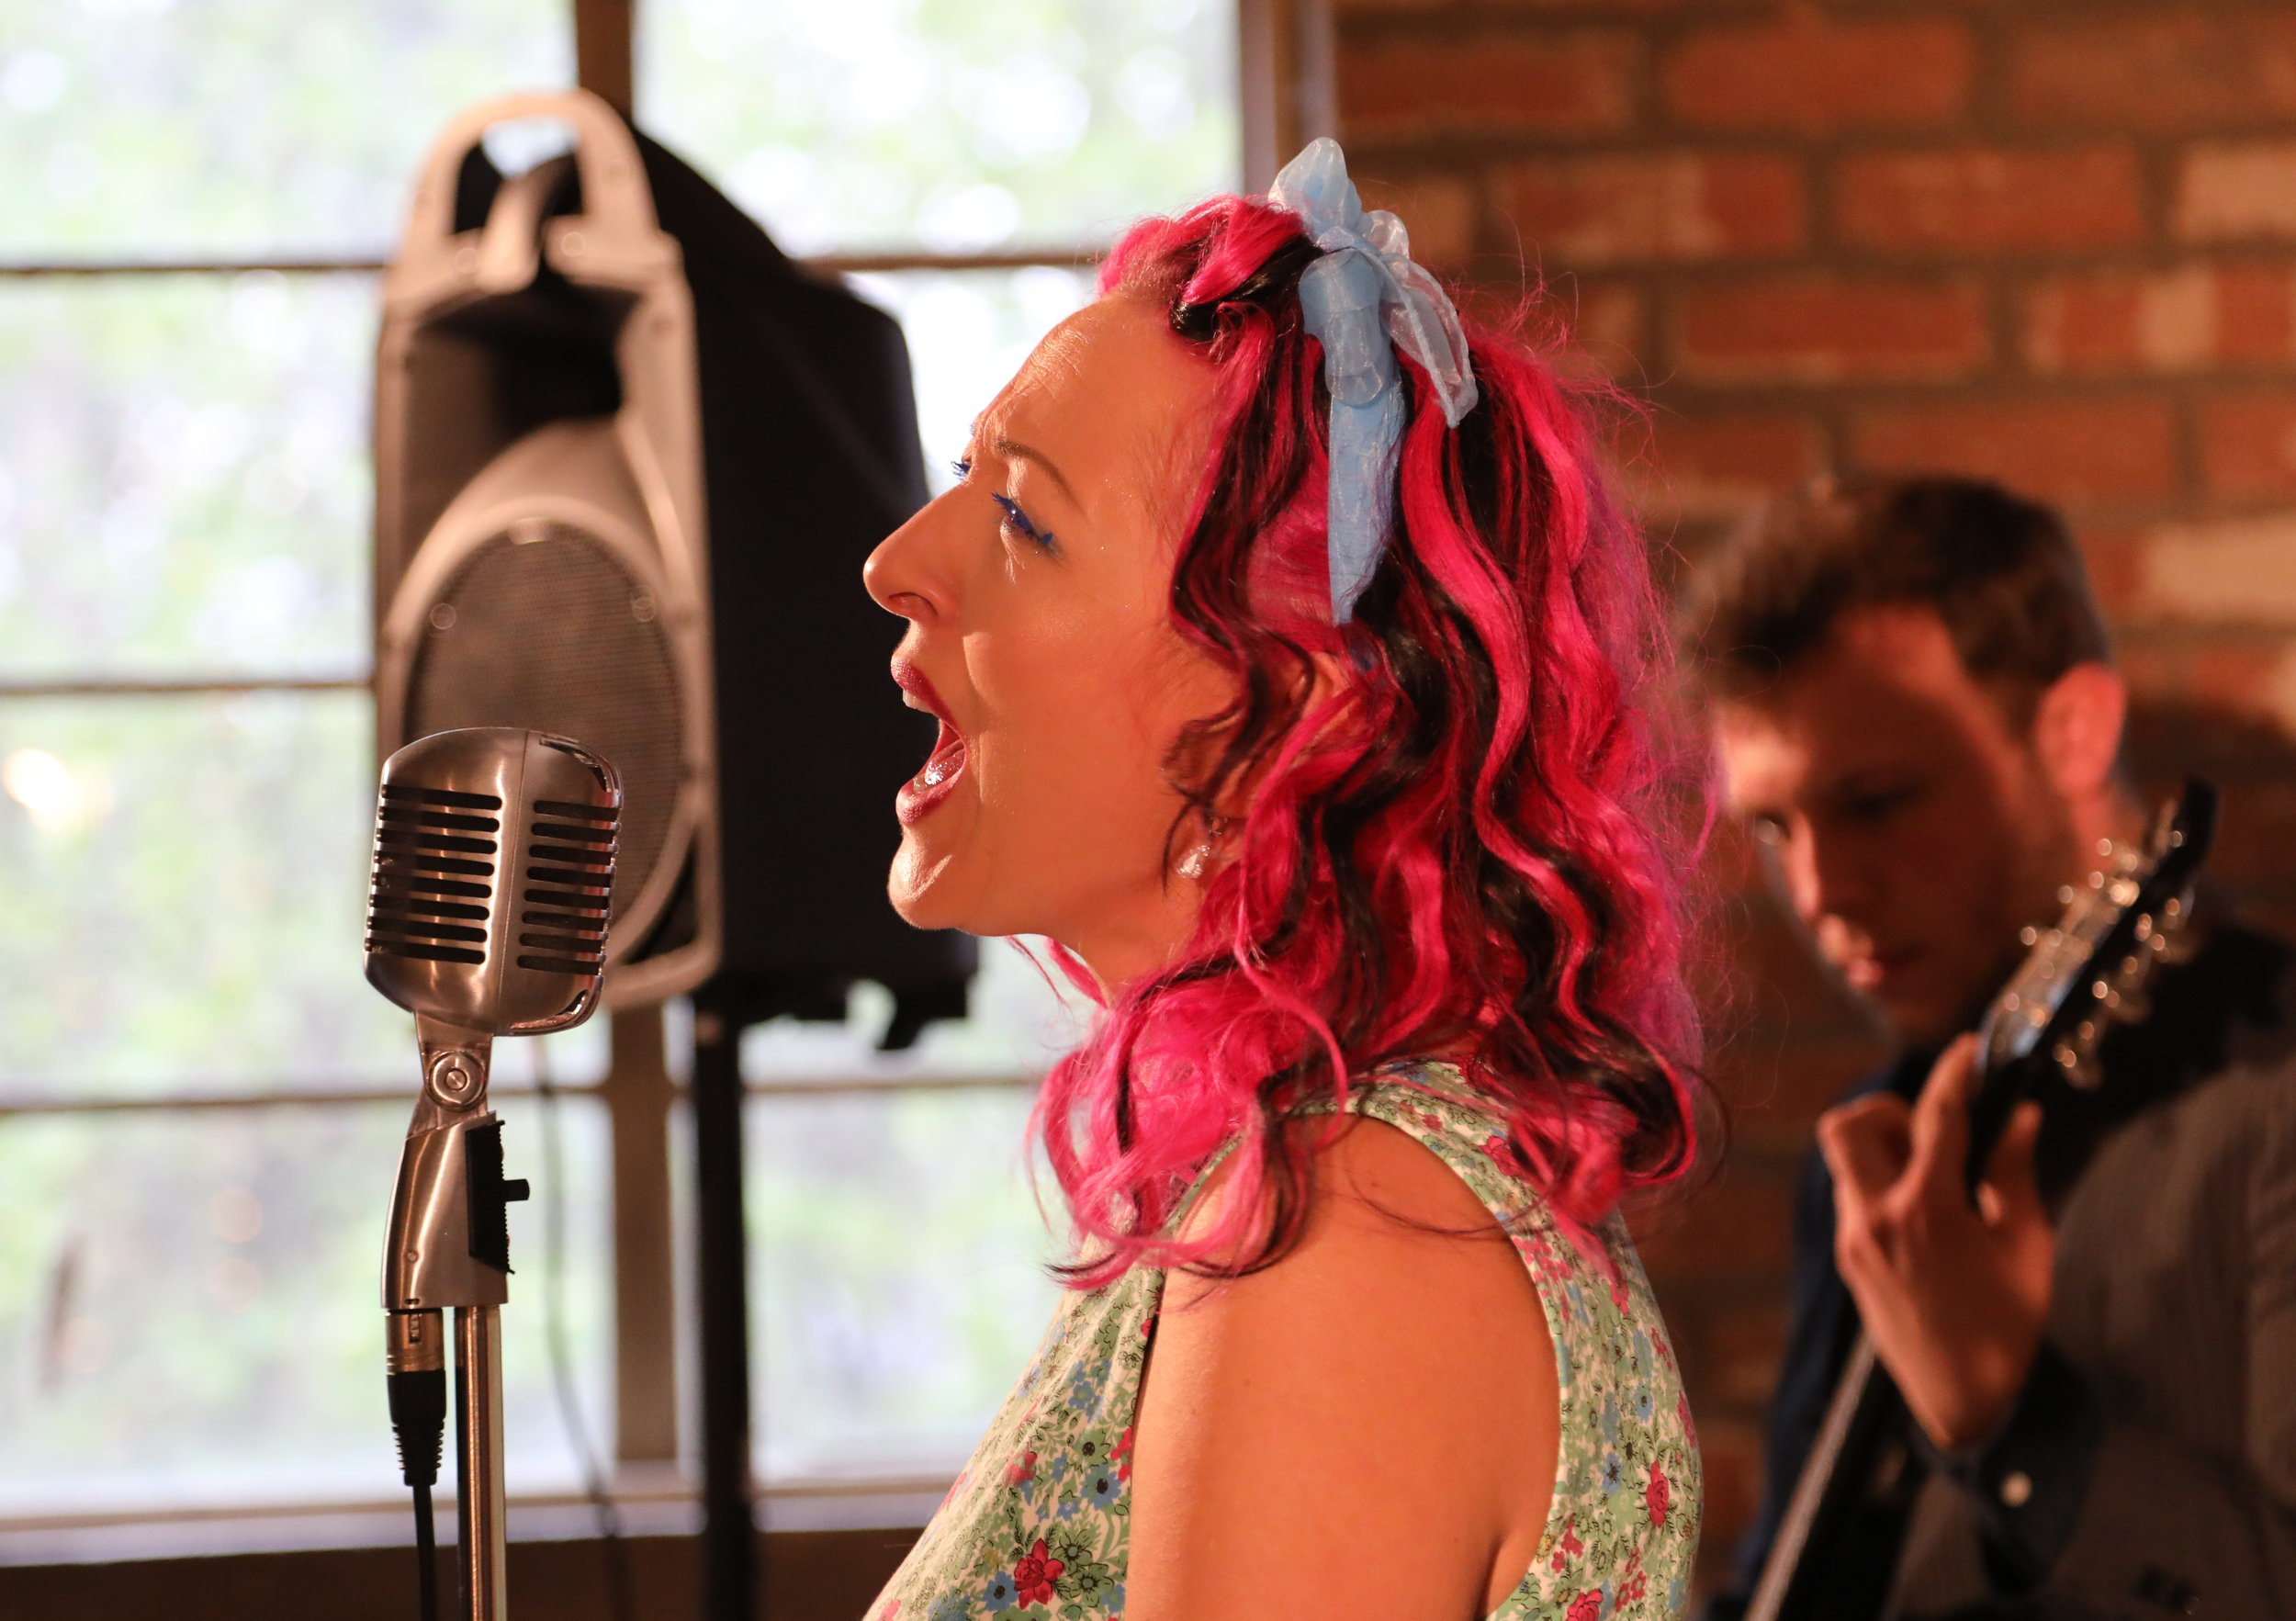 Vix from Fuzzbox singing